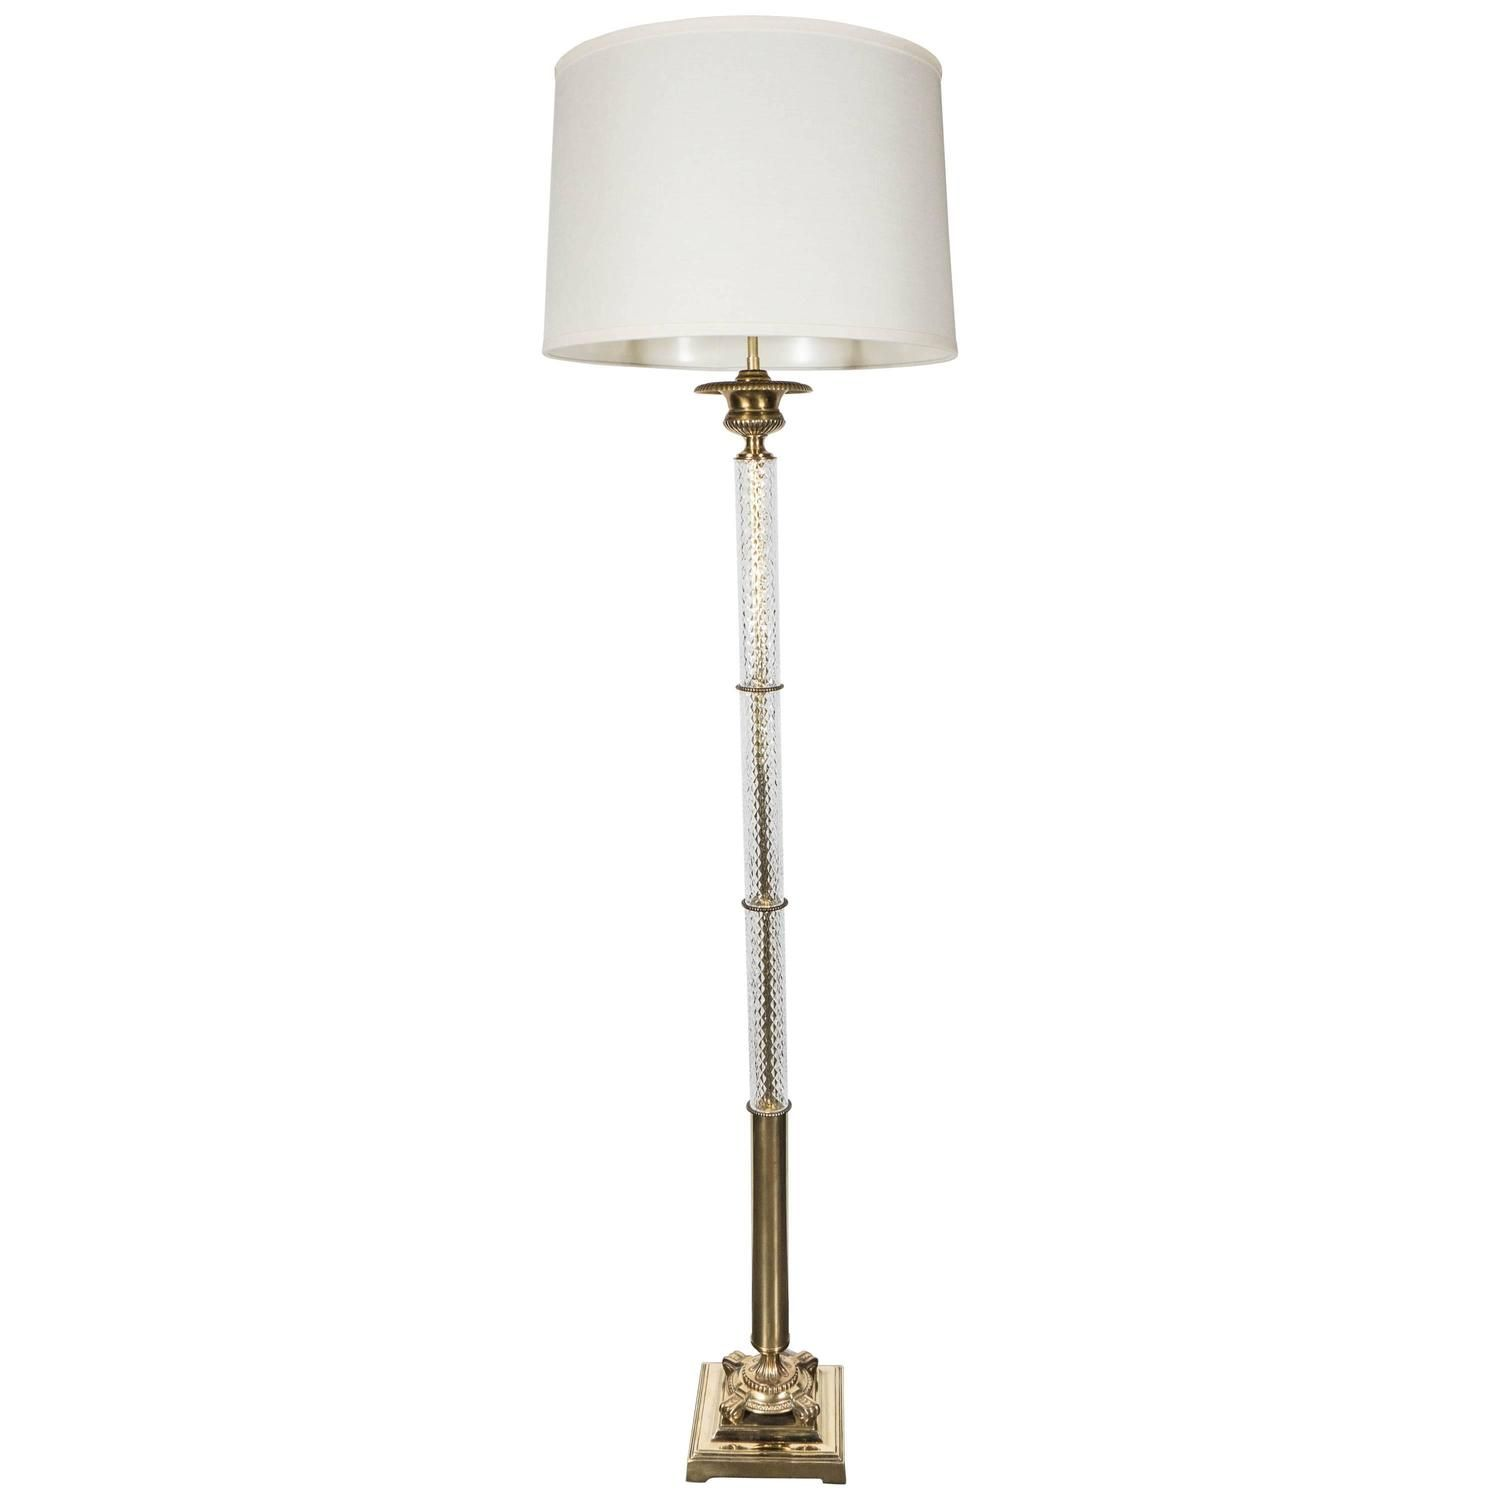 Stunning Art Deco Brass and Glass Floor Lamp with ...